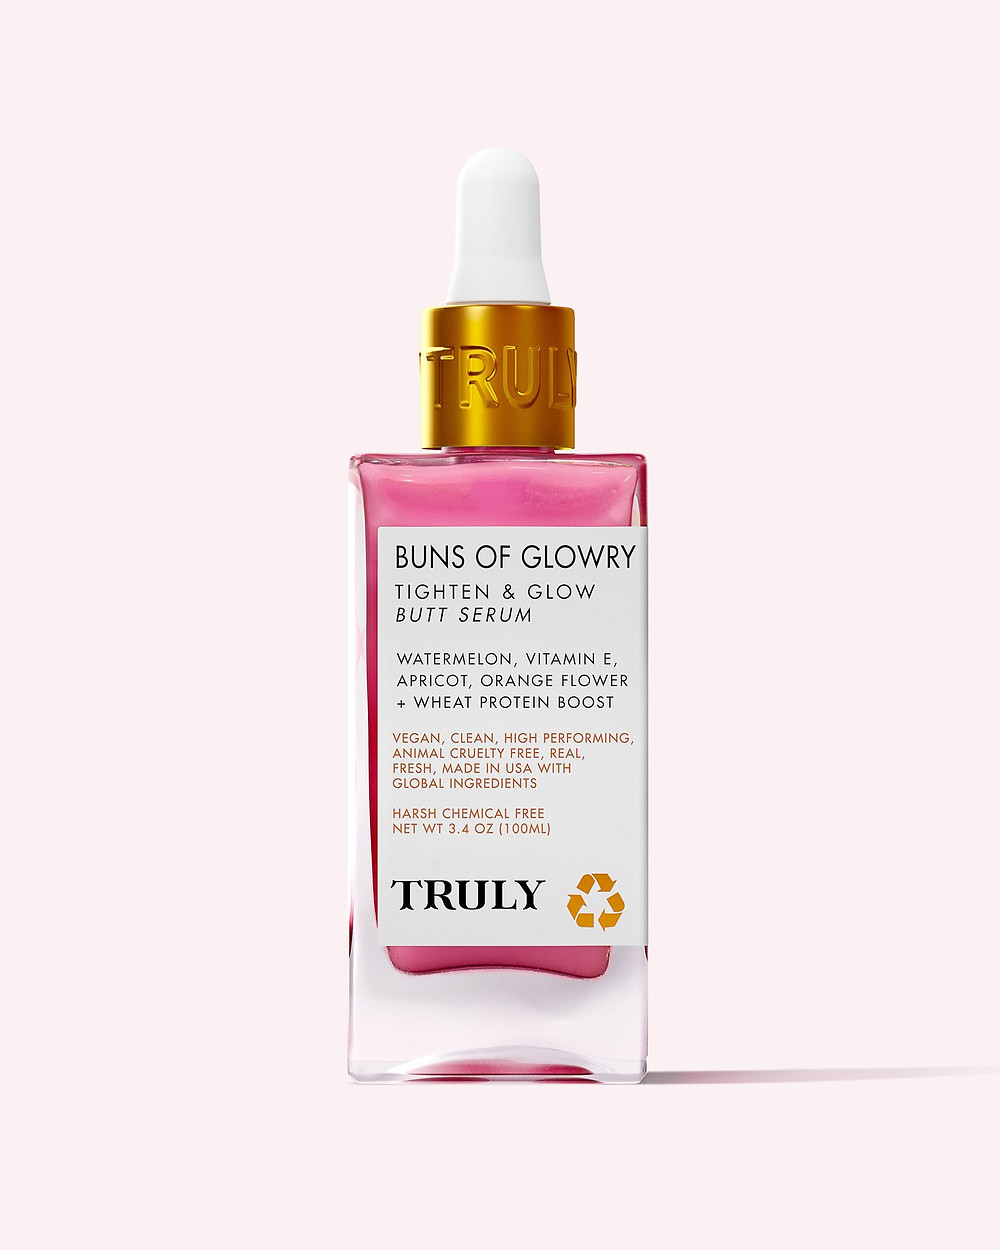 A glass bottle of Truly Beauty Butt Serum, which is vibrant fuschia pink